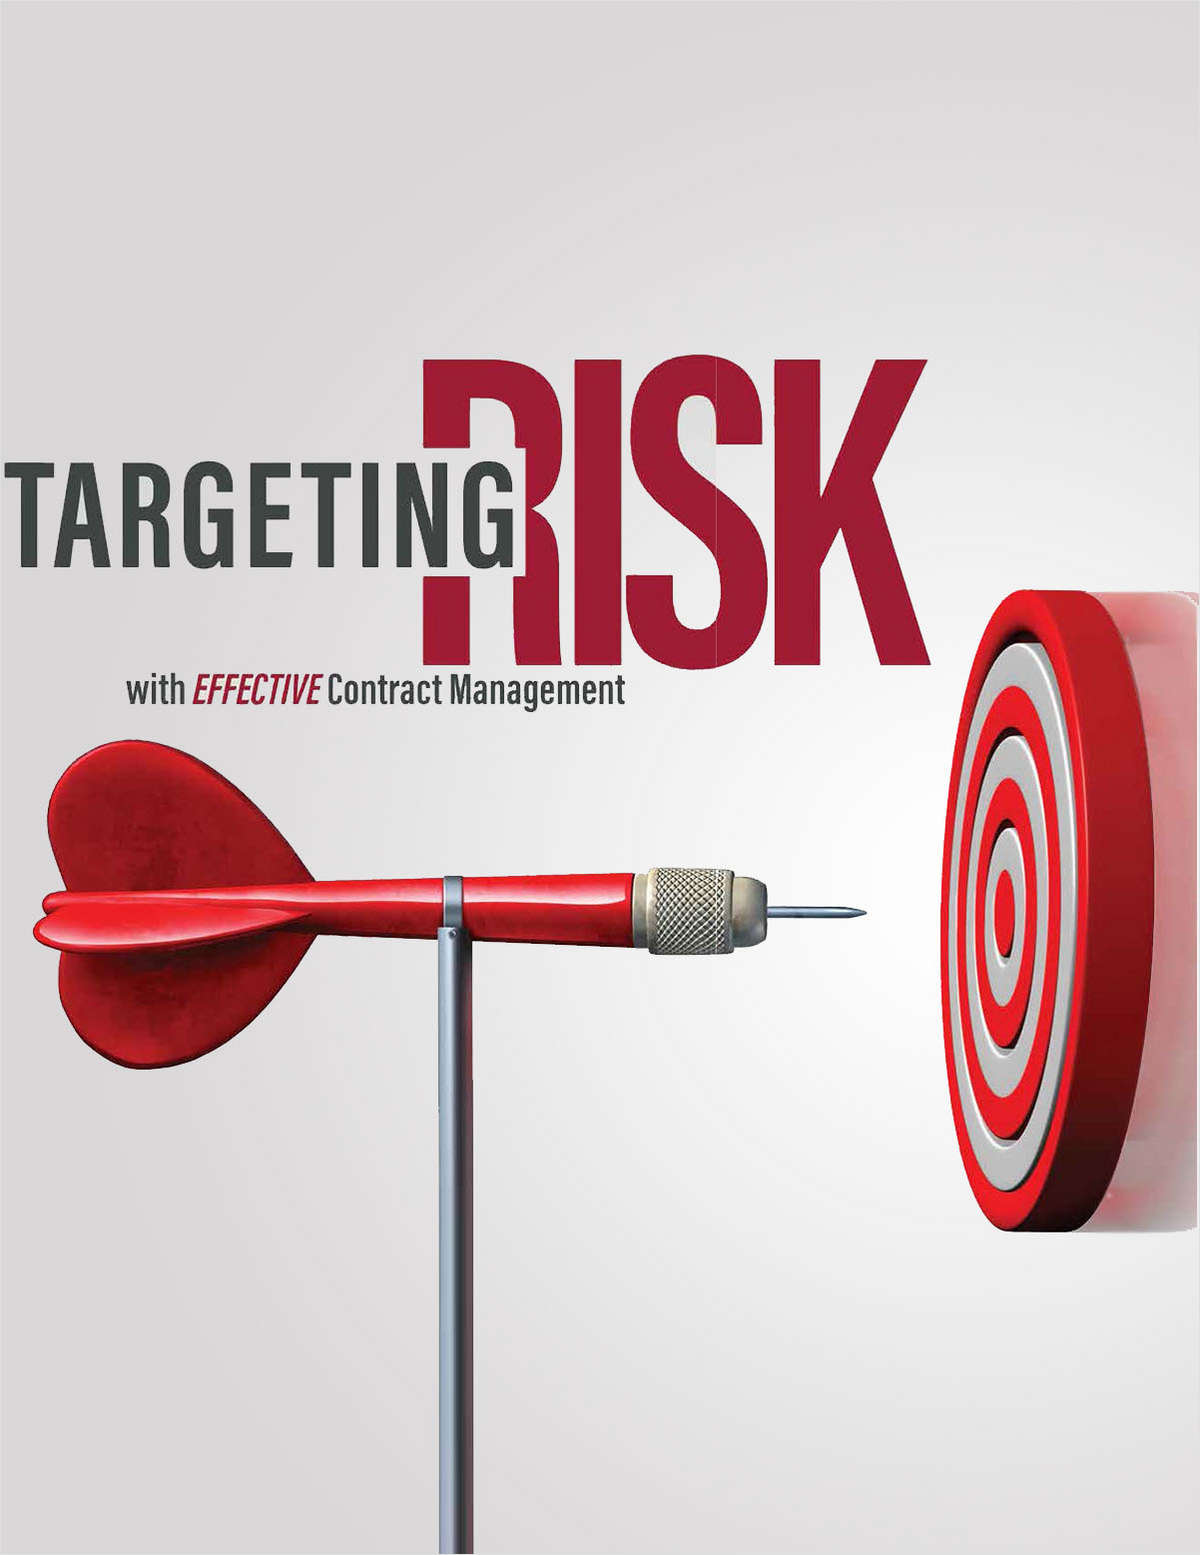 Targeting Risk with Effective Contract Management